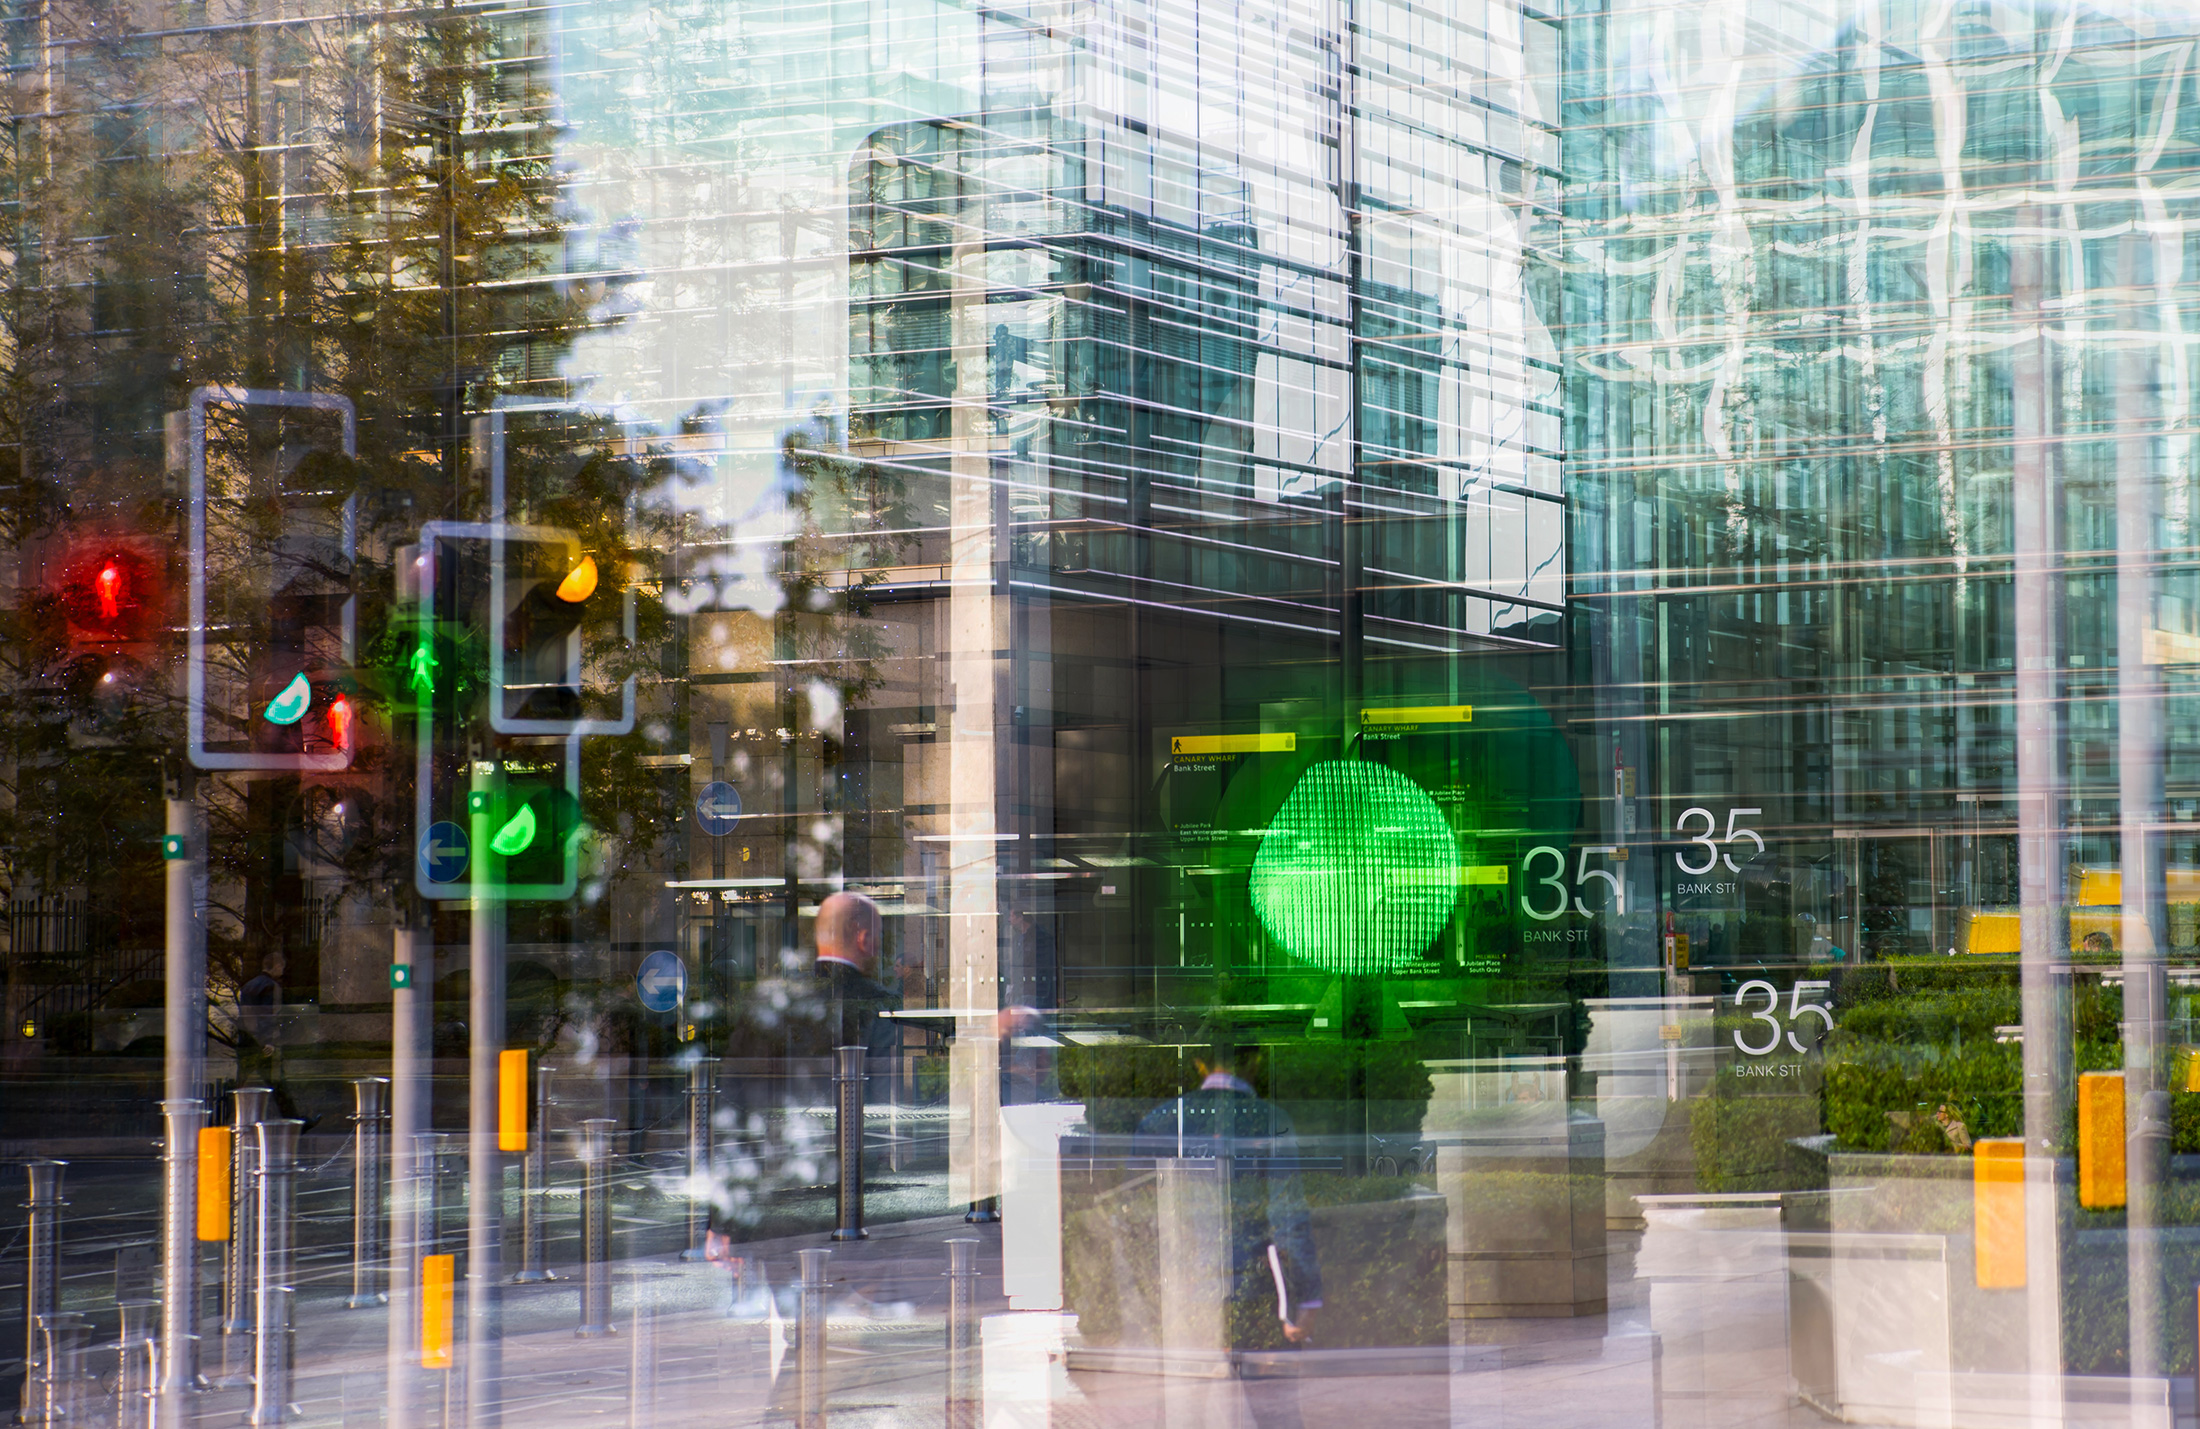 Traffic lights and pedestrians reflected in the windows of a city office building